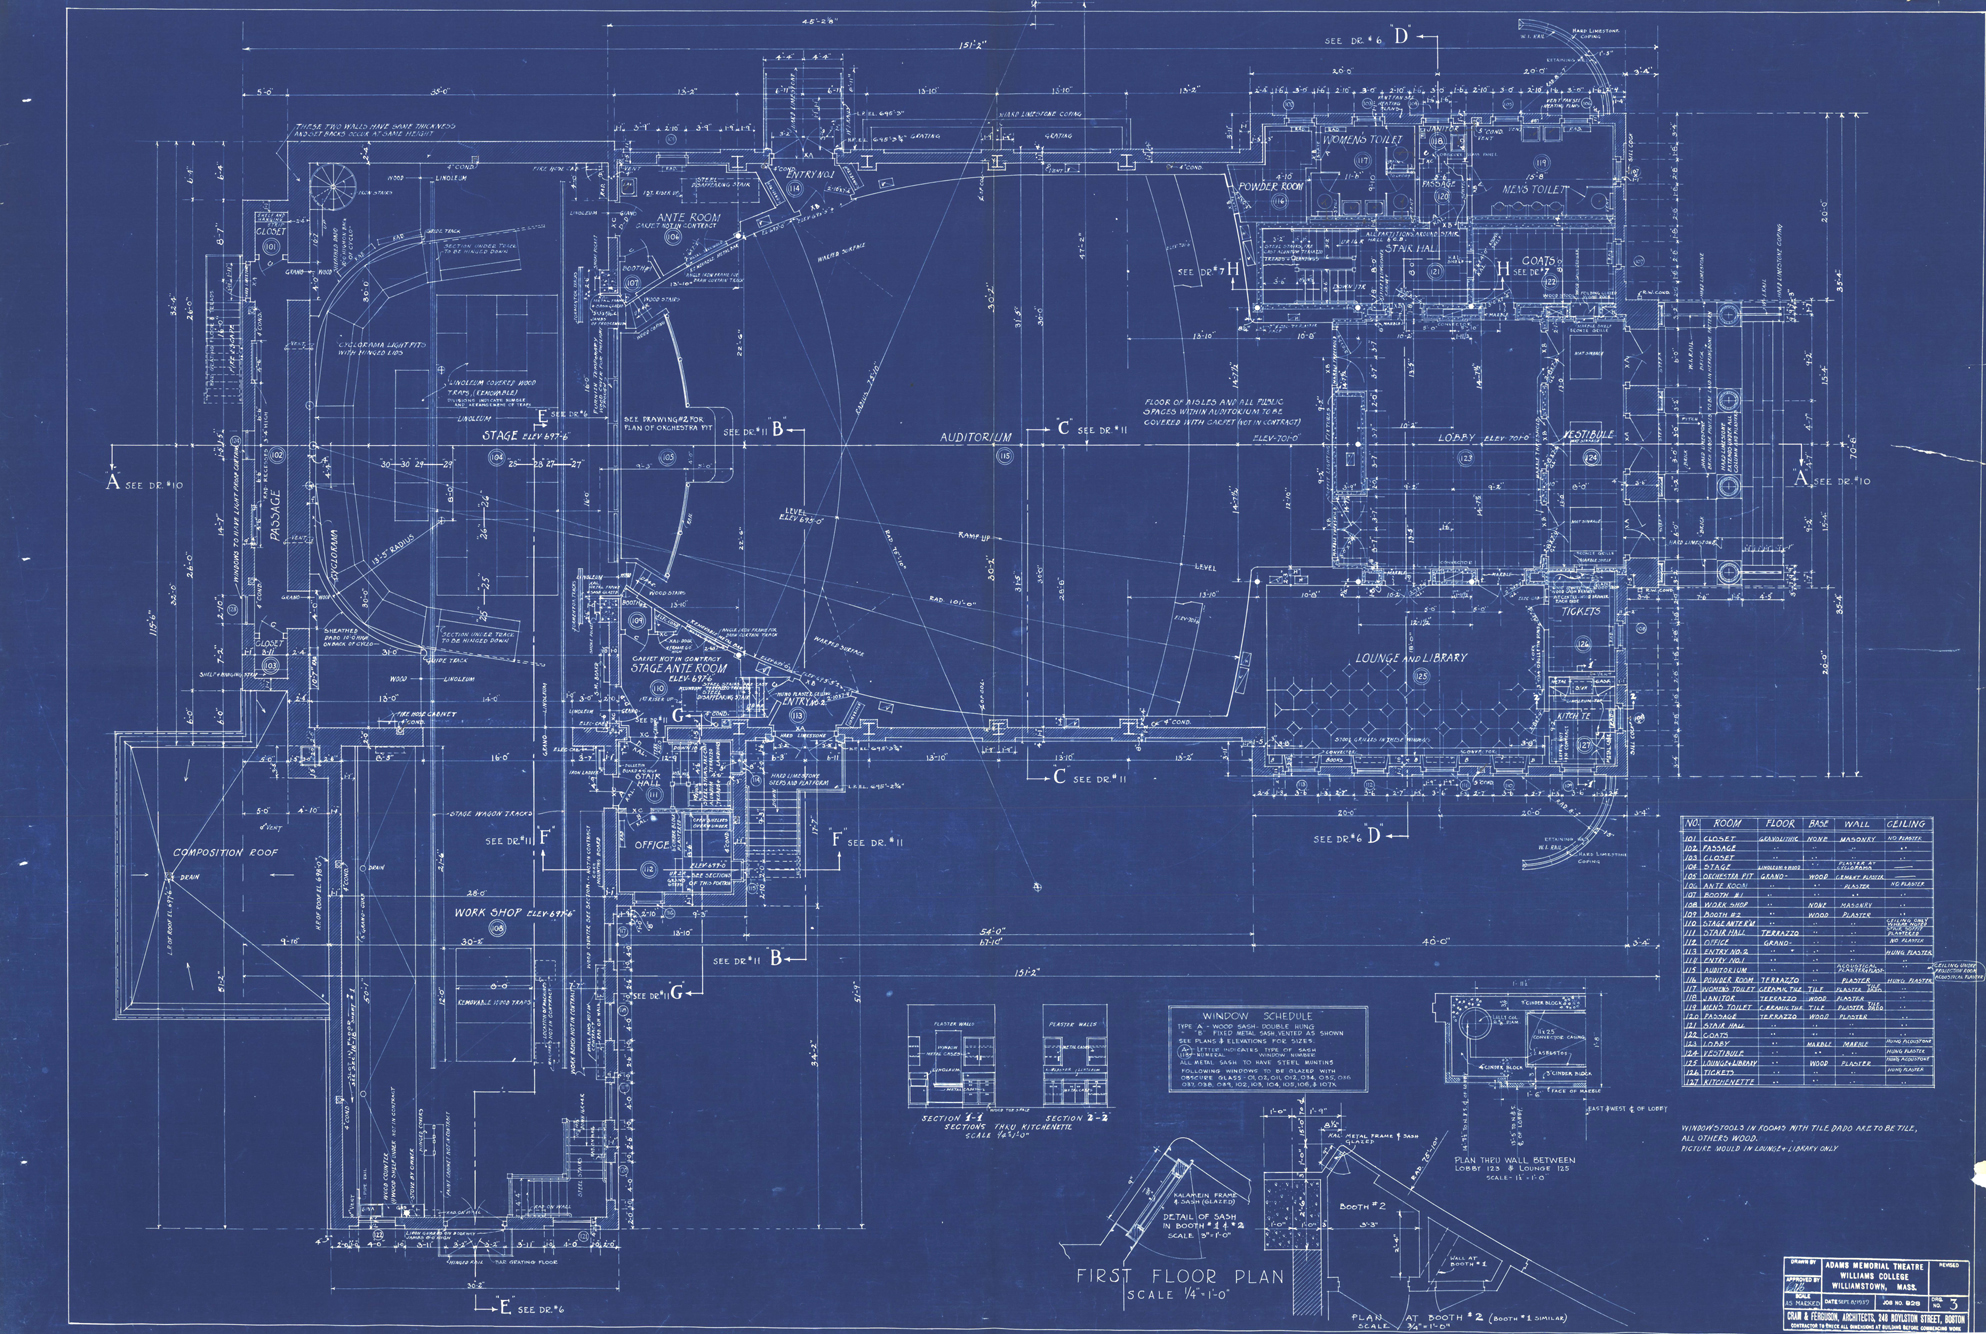 Blueprints for House blueprint images